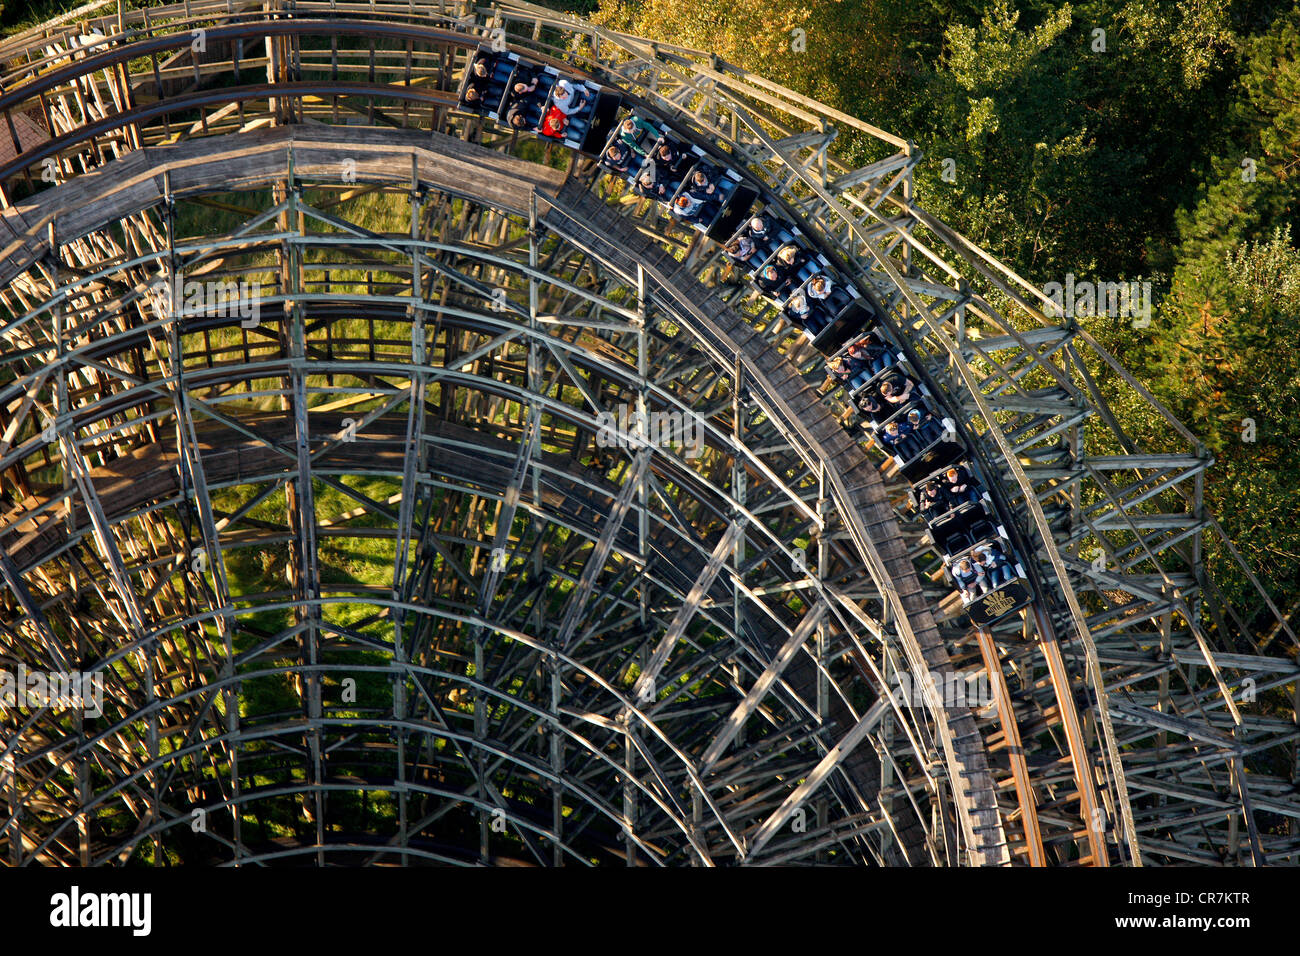 aerial view wooden roller coaster the bandit movie park germany stock photo royalty free. Black Bedroom Furniture Sets. Home Design Ideas